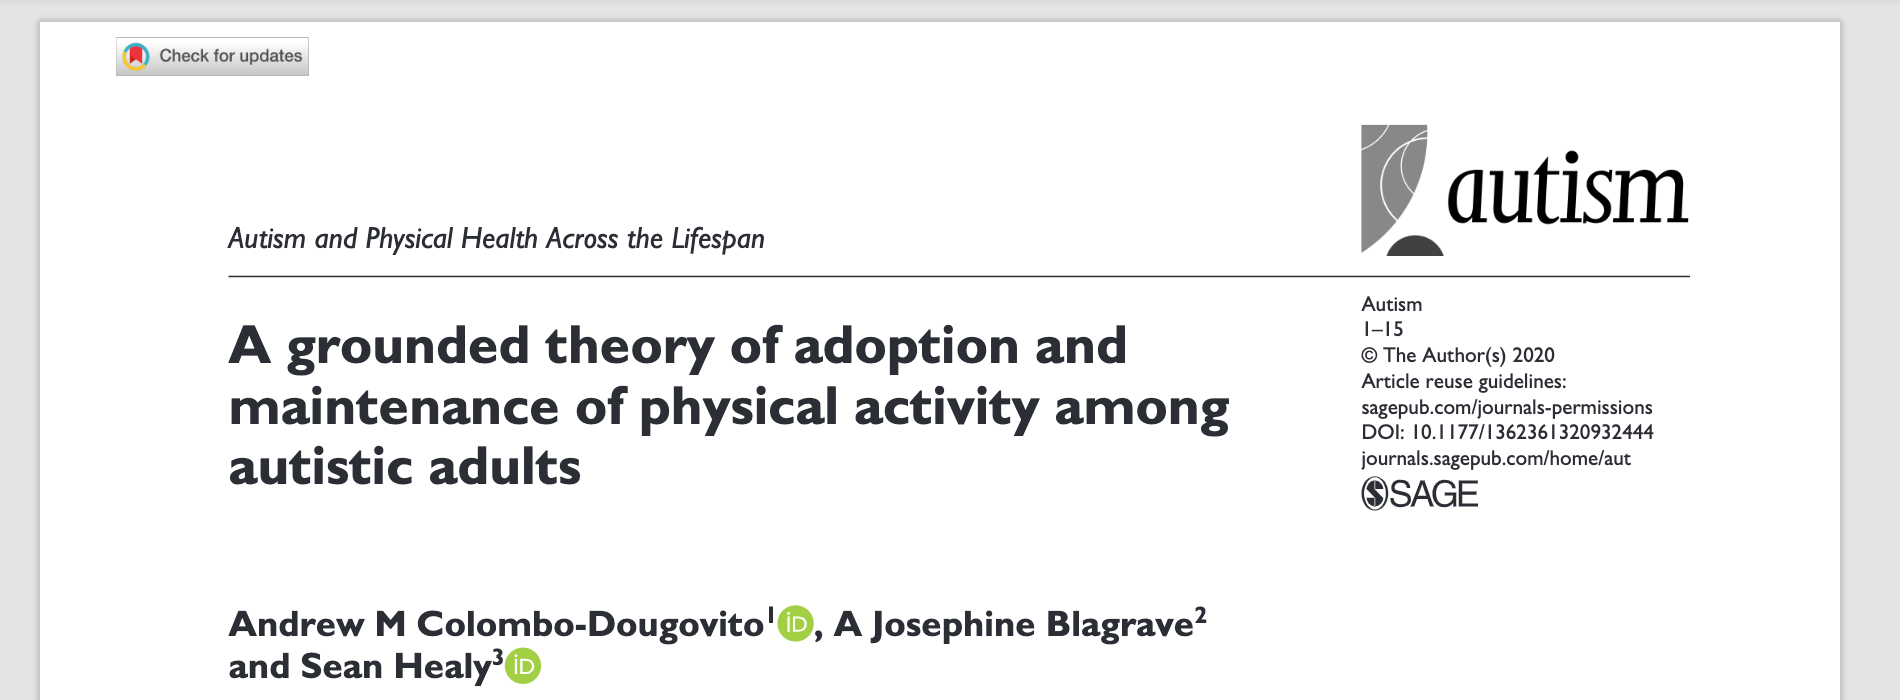 A grounded theory of adoption and maintenance of physical activity among autistic adults